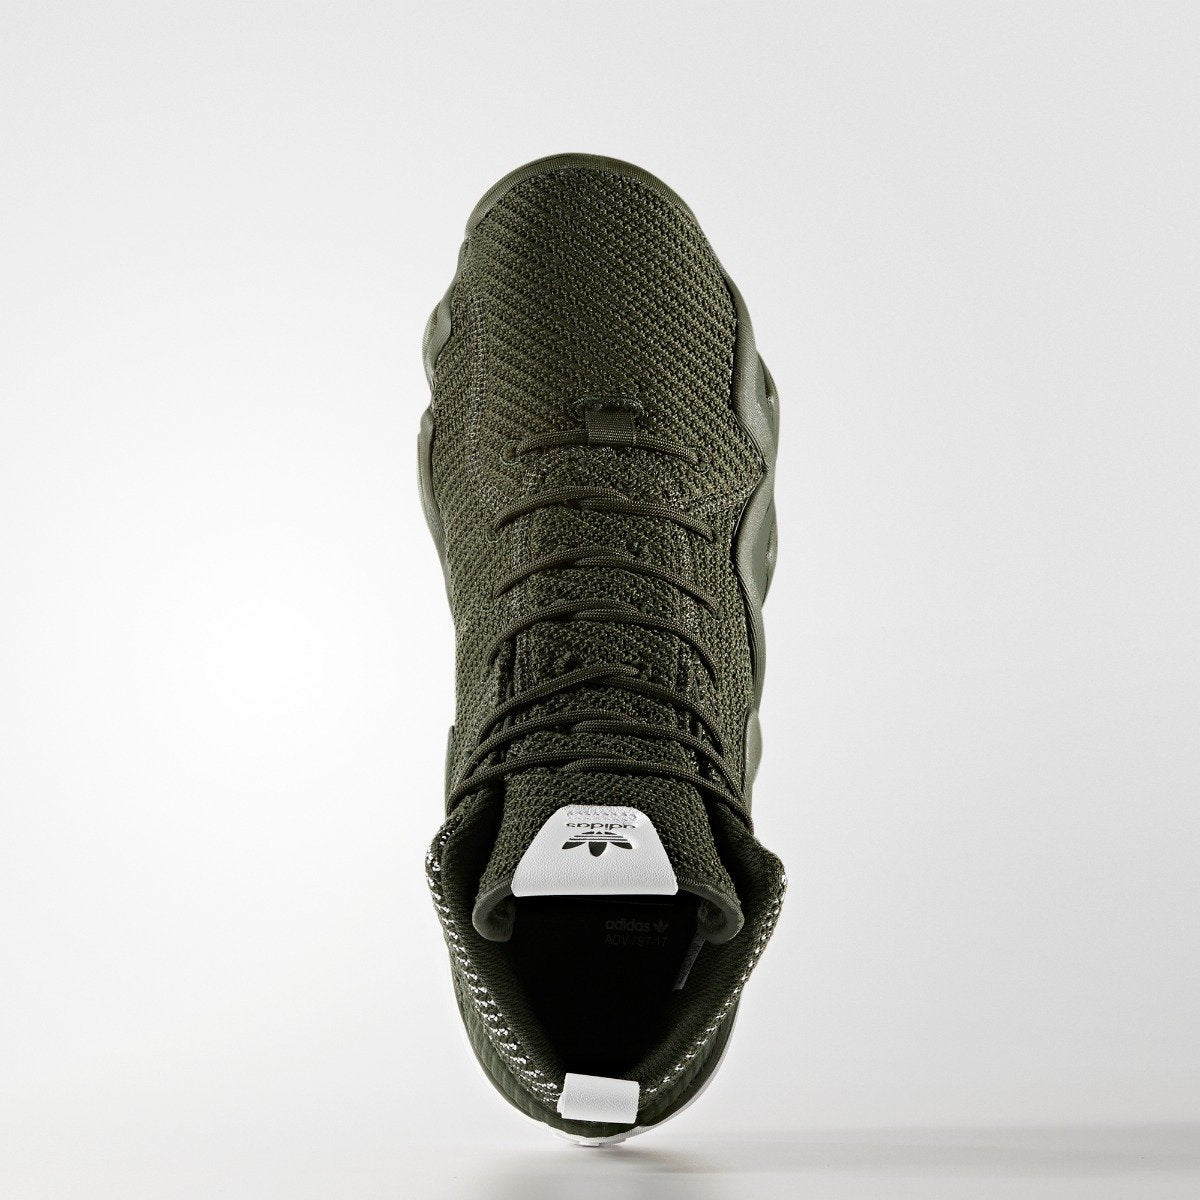 3b2b6afdf9c7 Men s adidas Originals Crazy 8 ADV Primeknit Shoes Night Cargo with White. 1